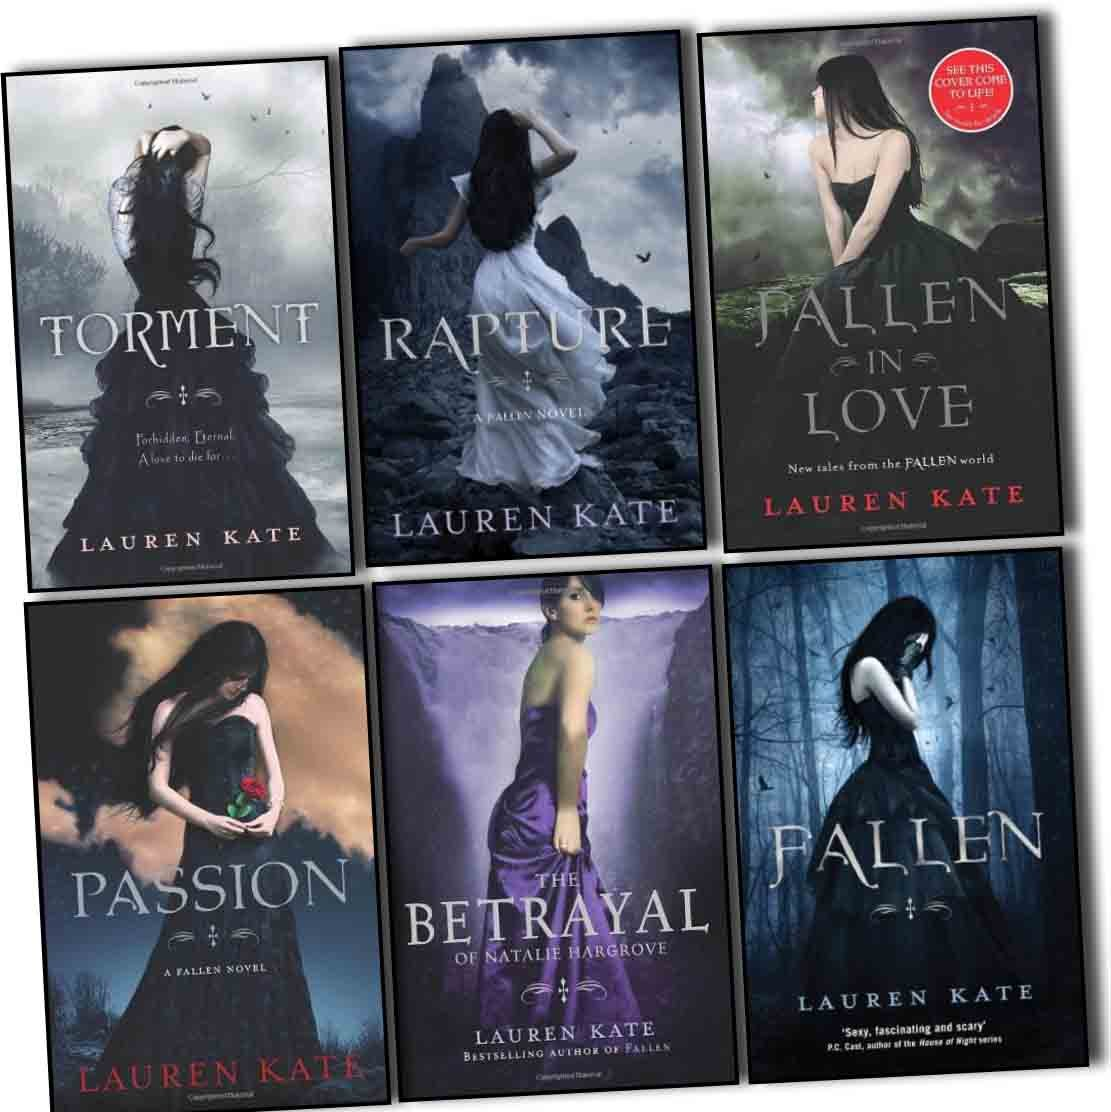 Passion Lauren Kate Ebook